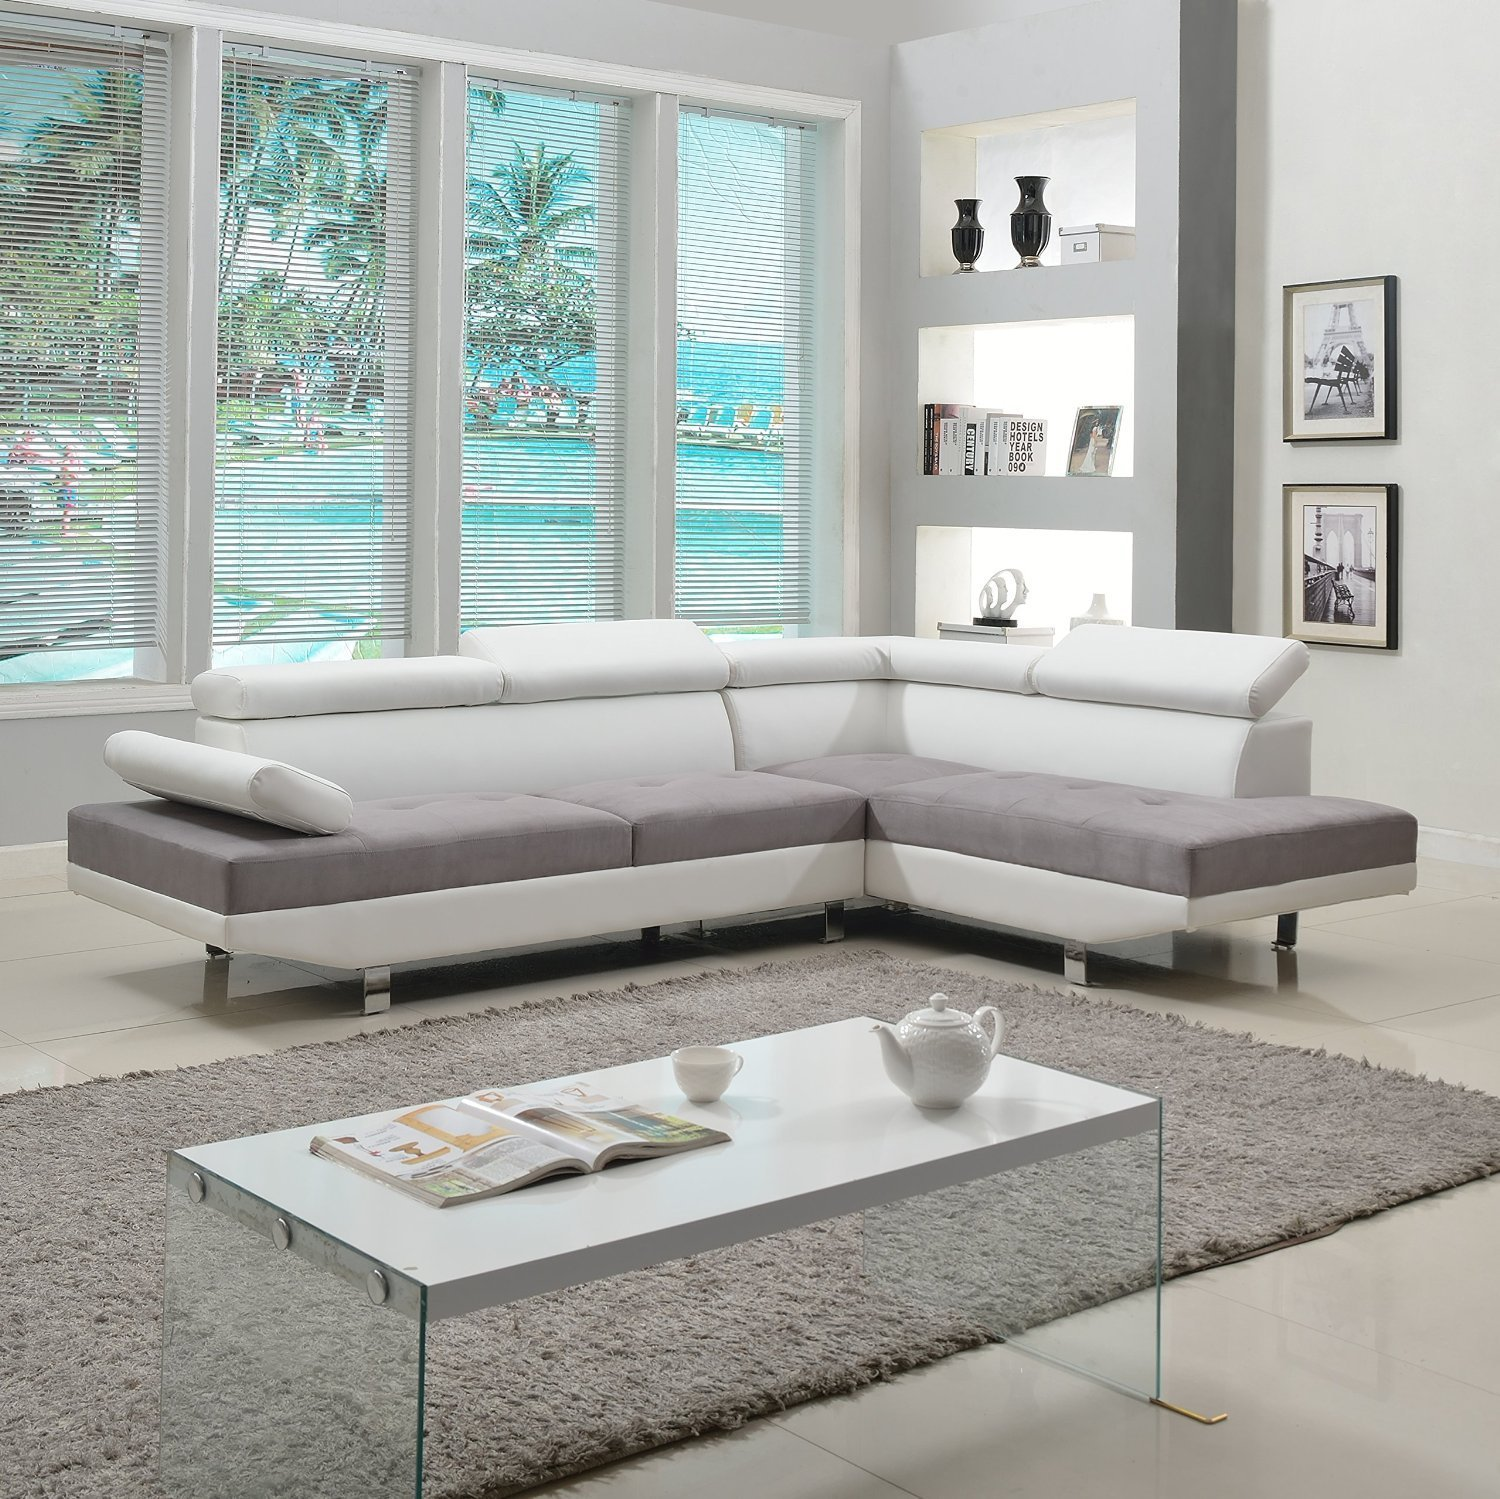 Modern Living Room Furniture Review – Find the Best One – HomeInDec